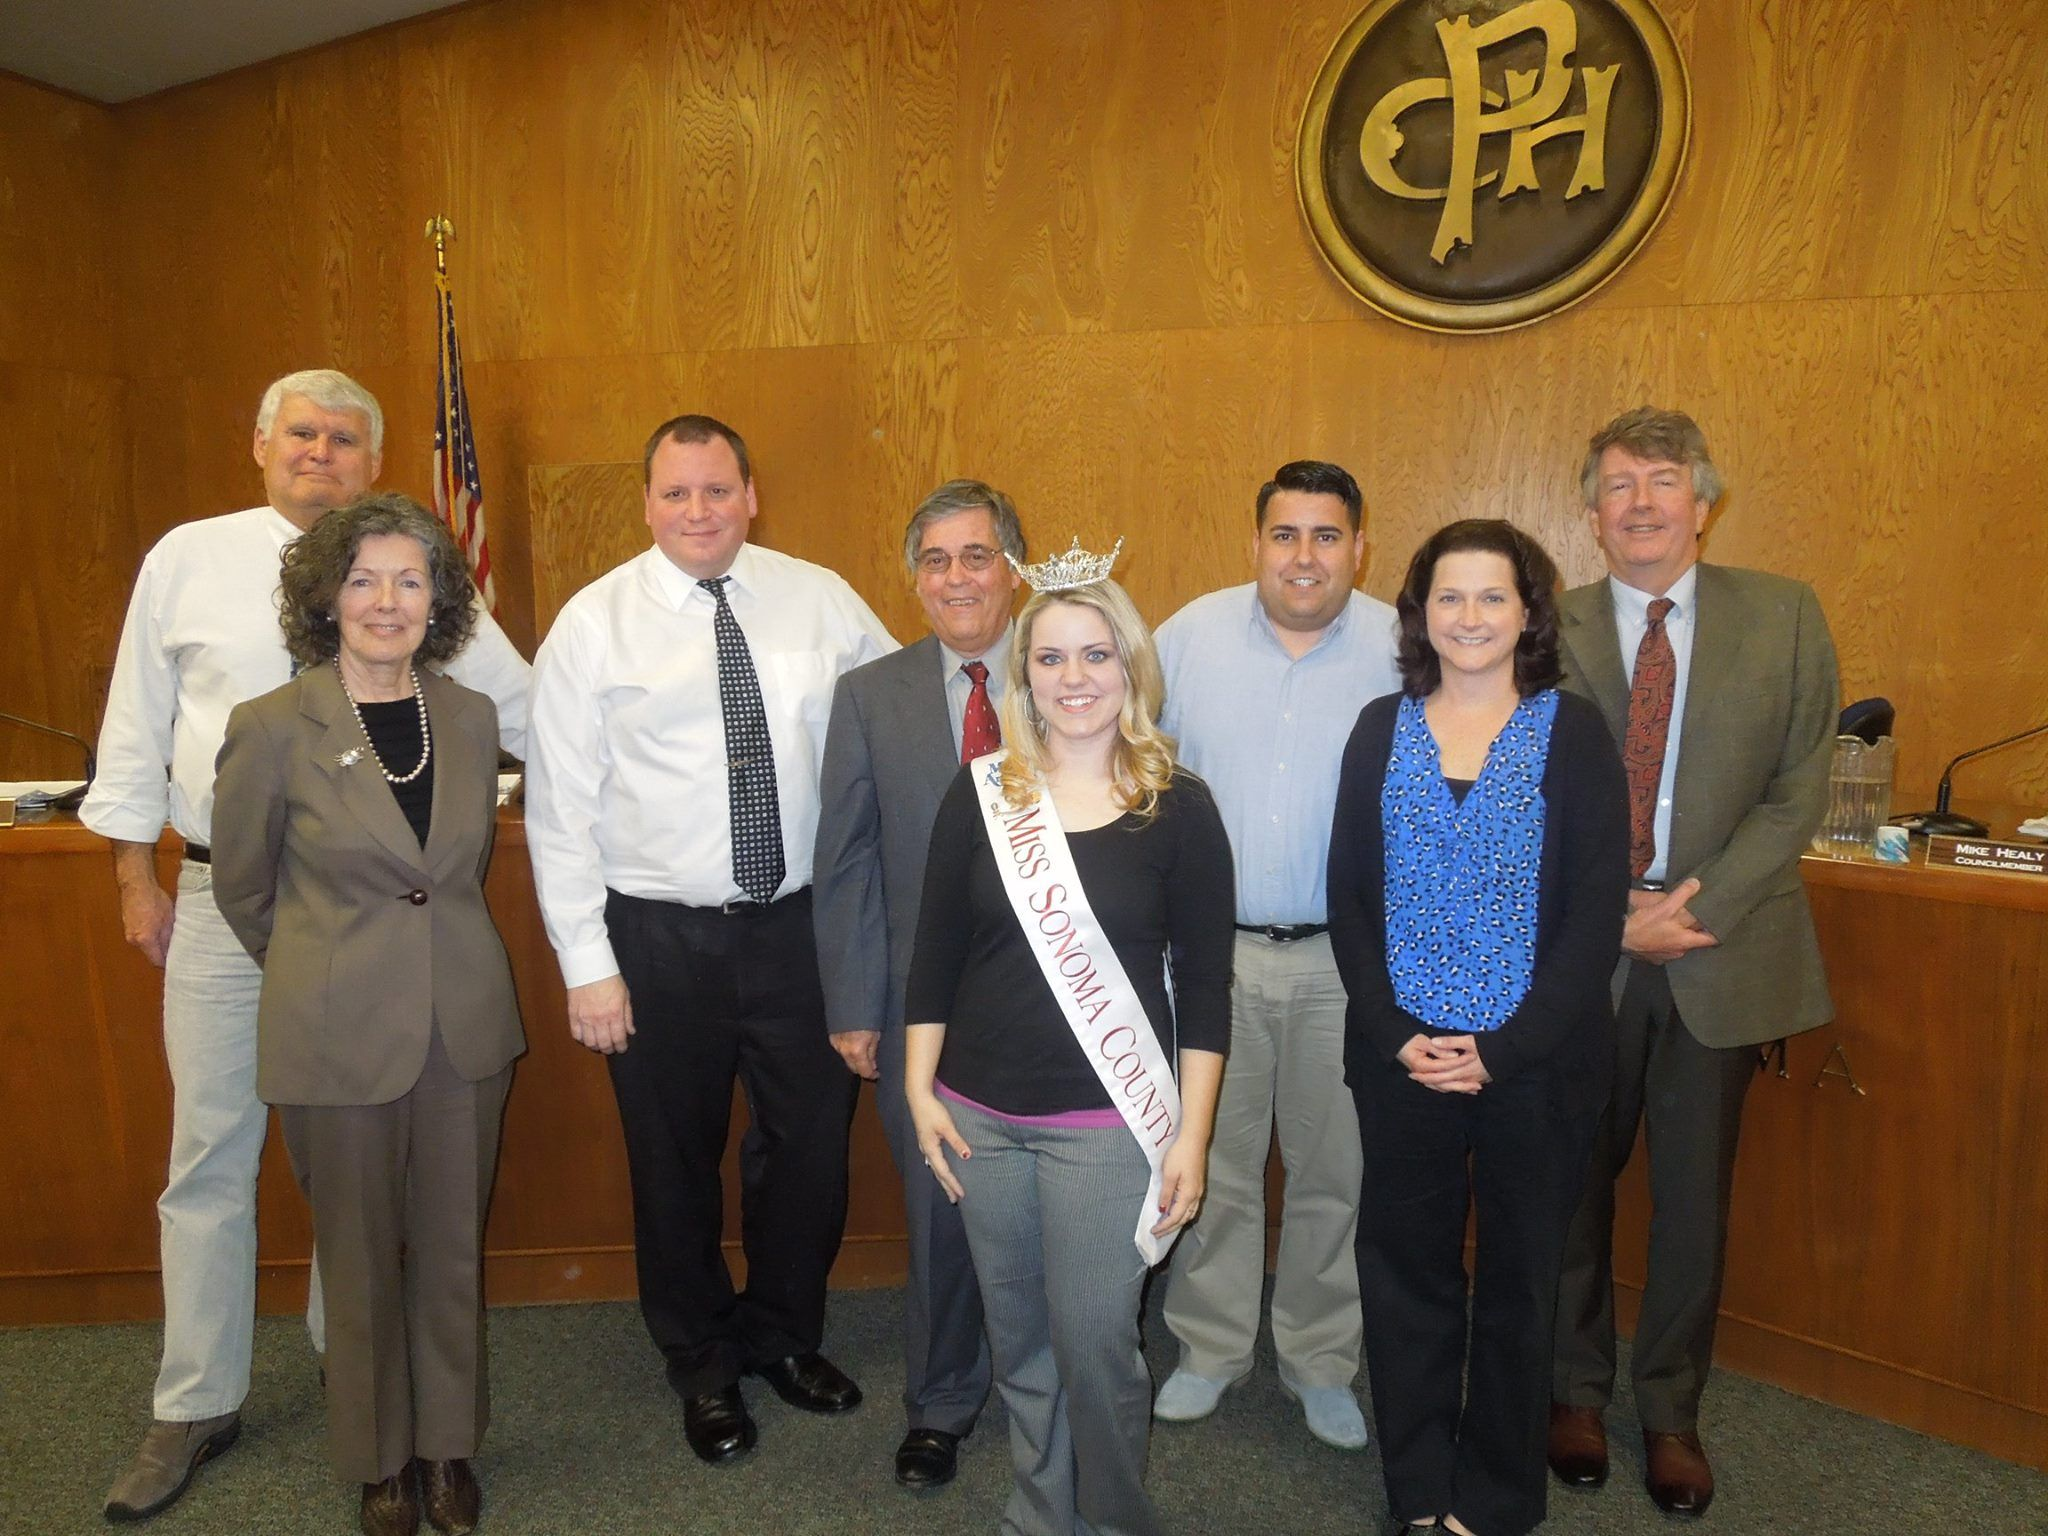 Miss Sonoma County Visiting The Petaluma City Council With